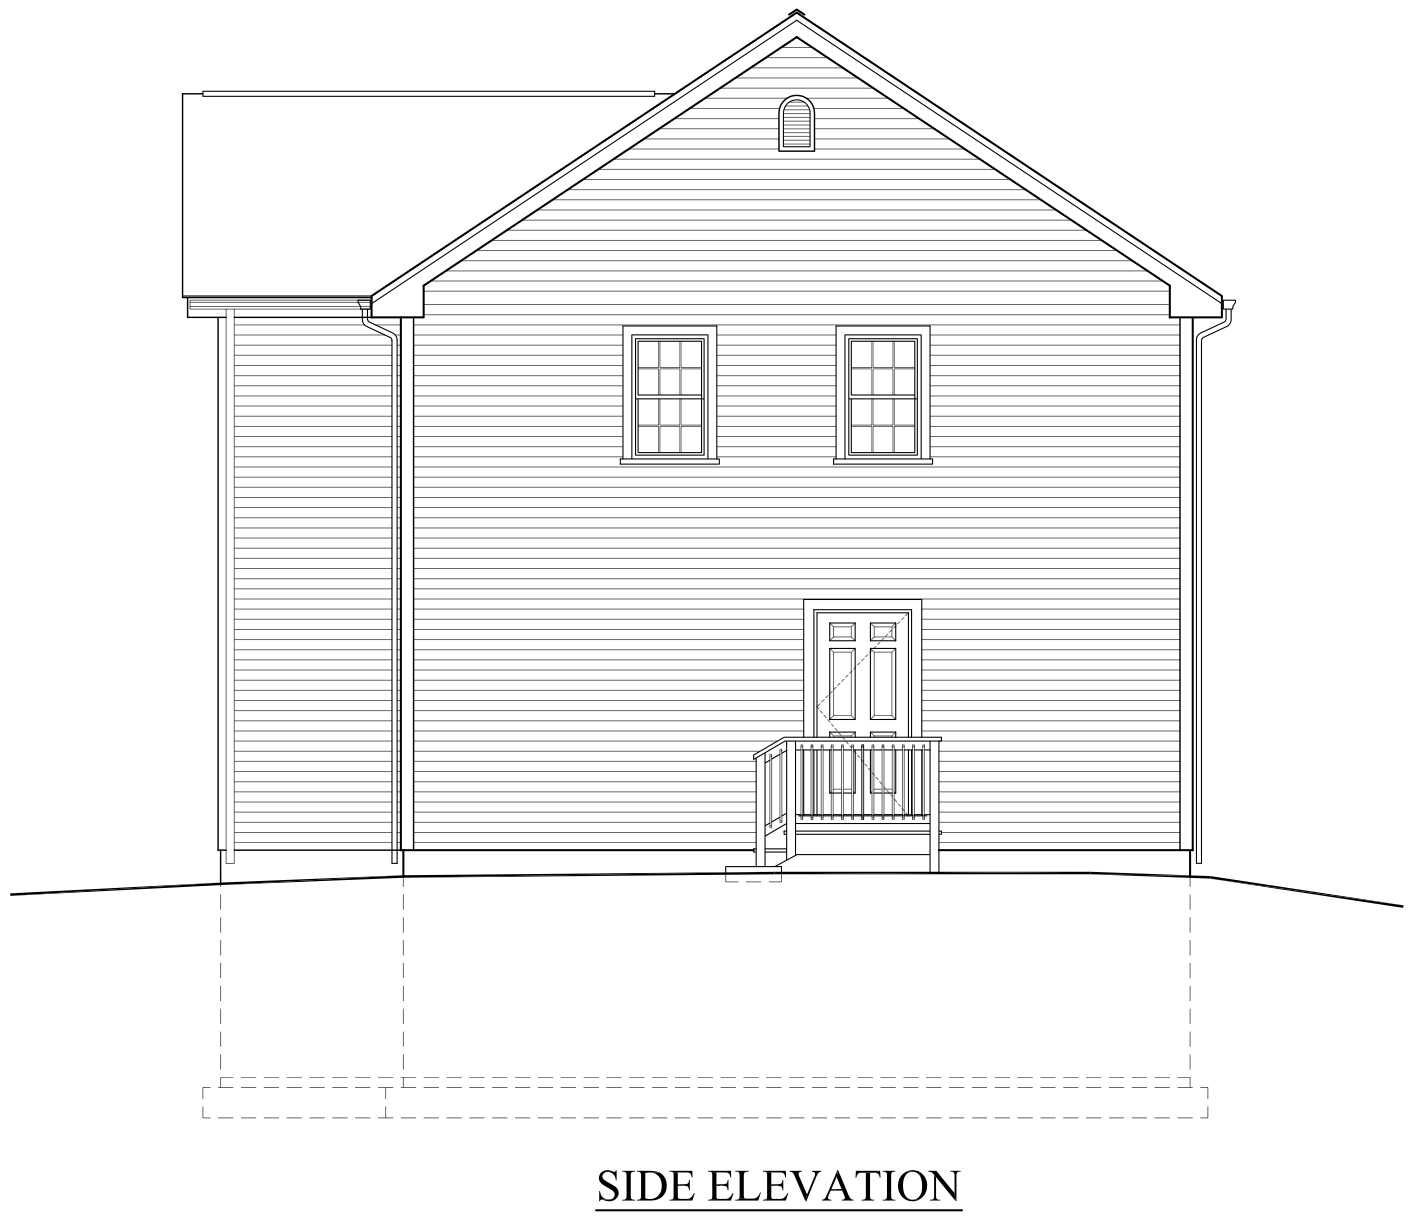 Front Elevation Meaning : What is front elevation